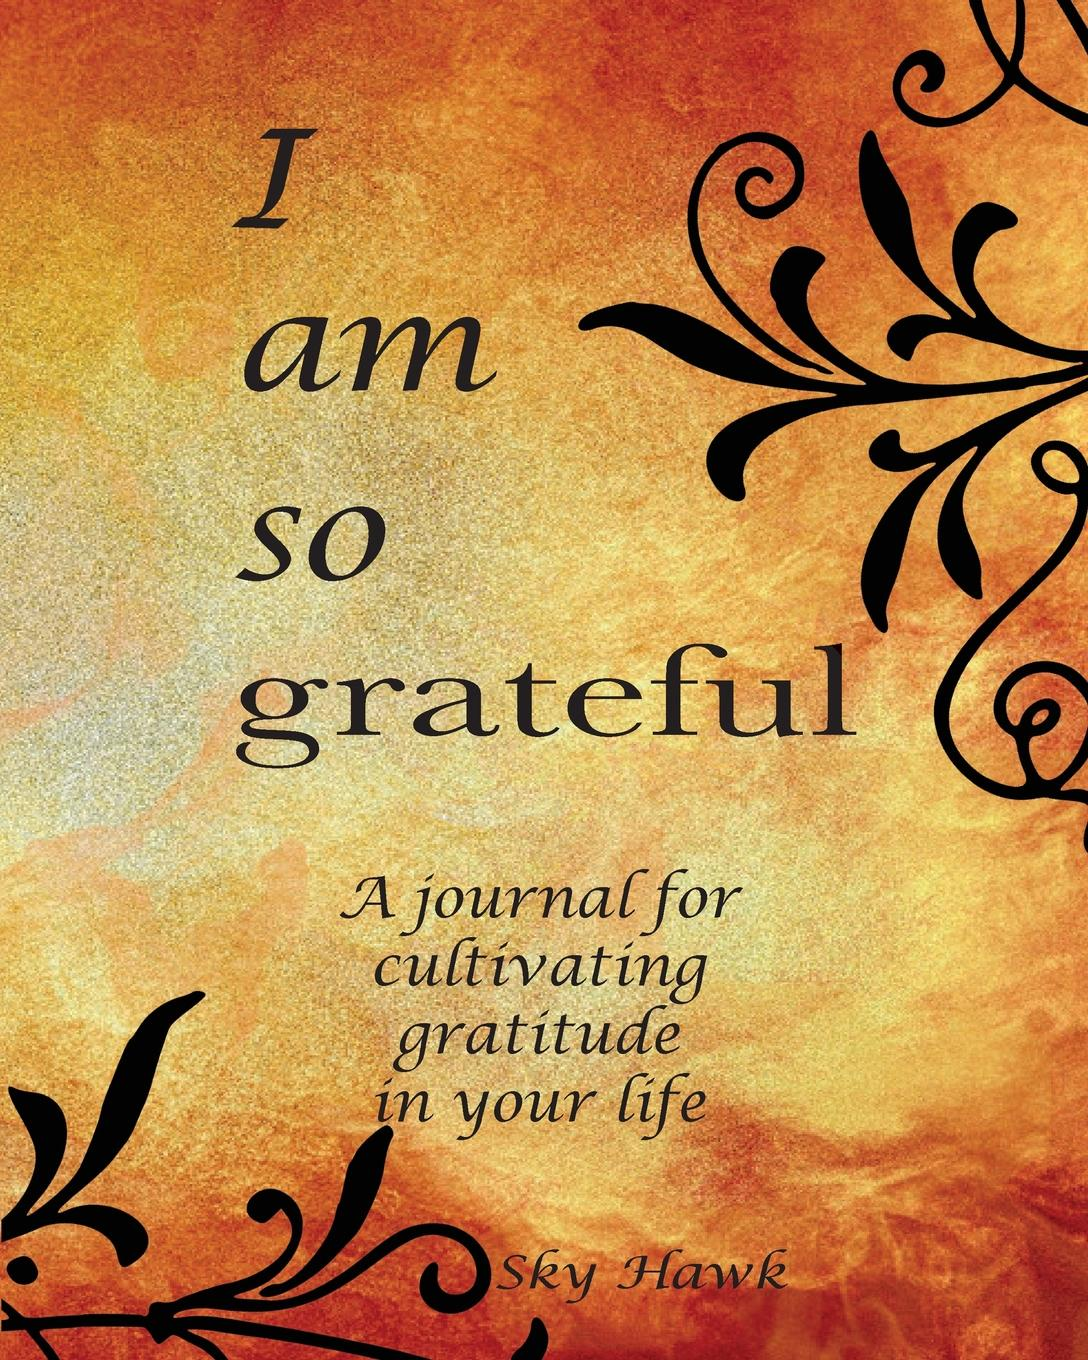 Sky Hawk I Am So Grateful. A journal for cultivating gratitude in your life. A gratitude journal. hashtagaday a hashtag journal